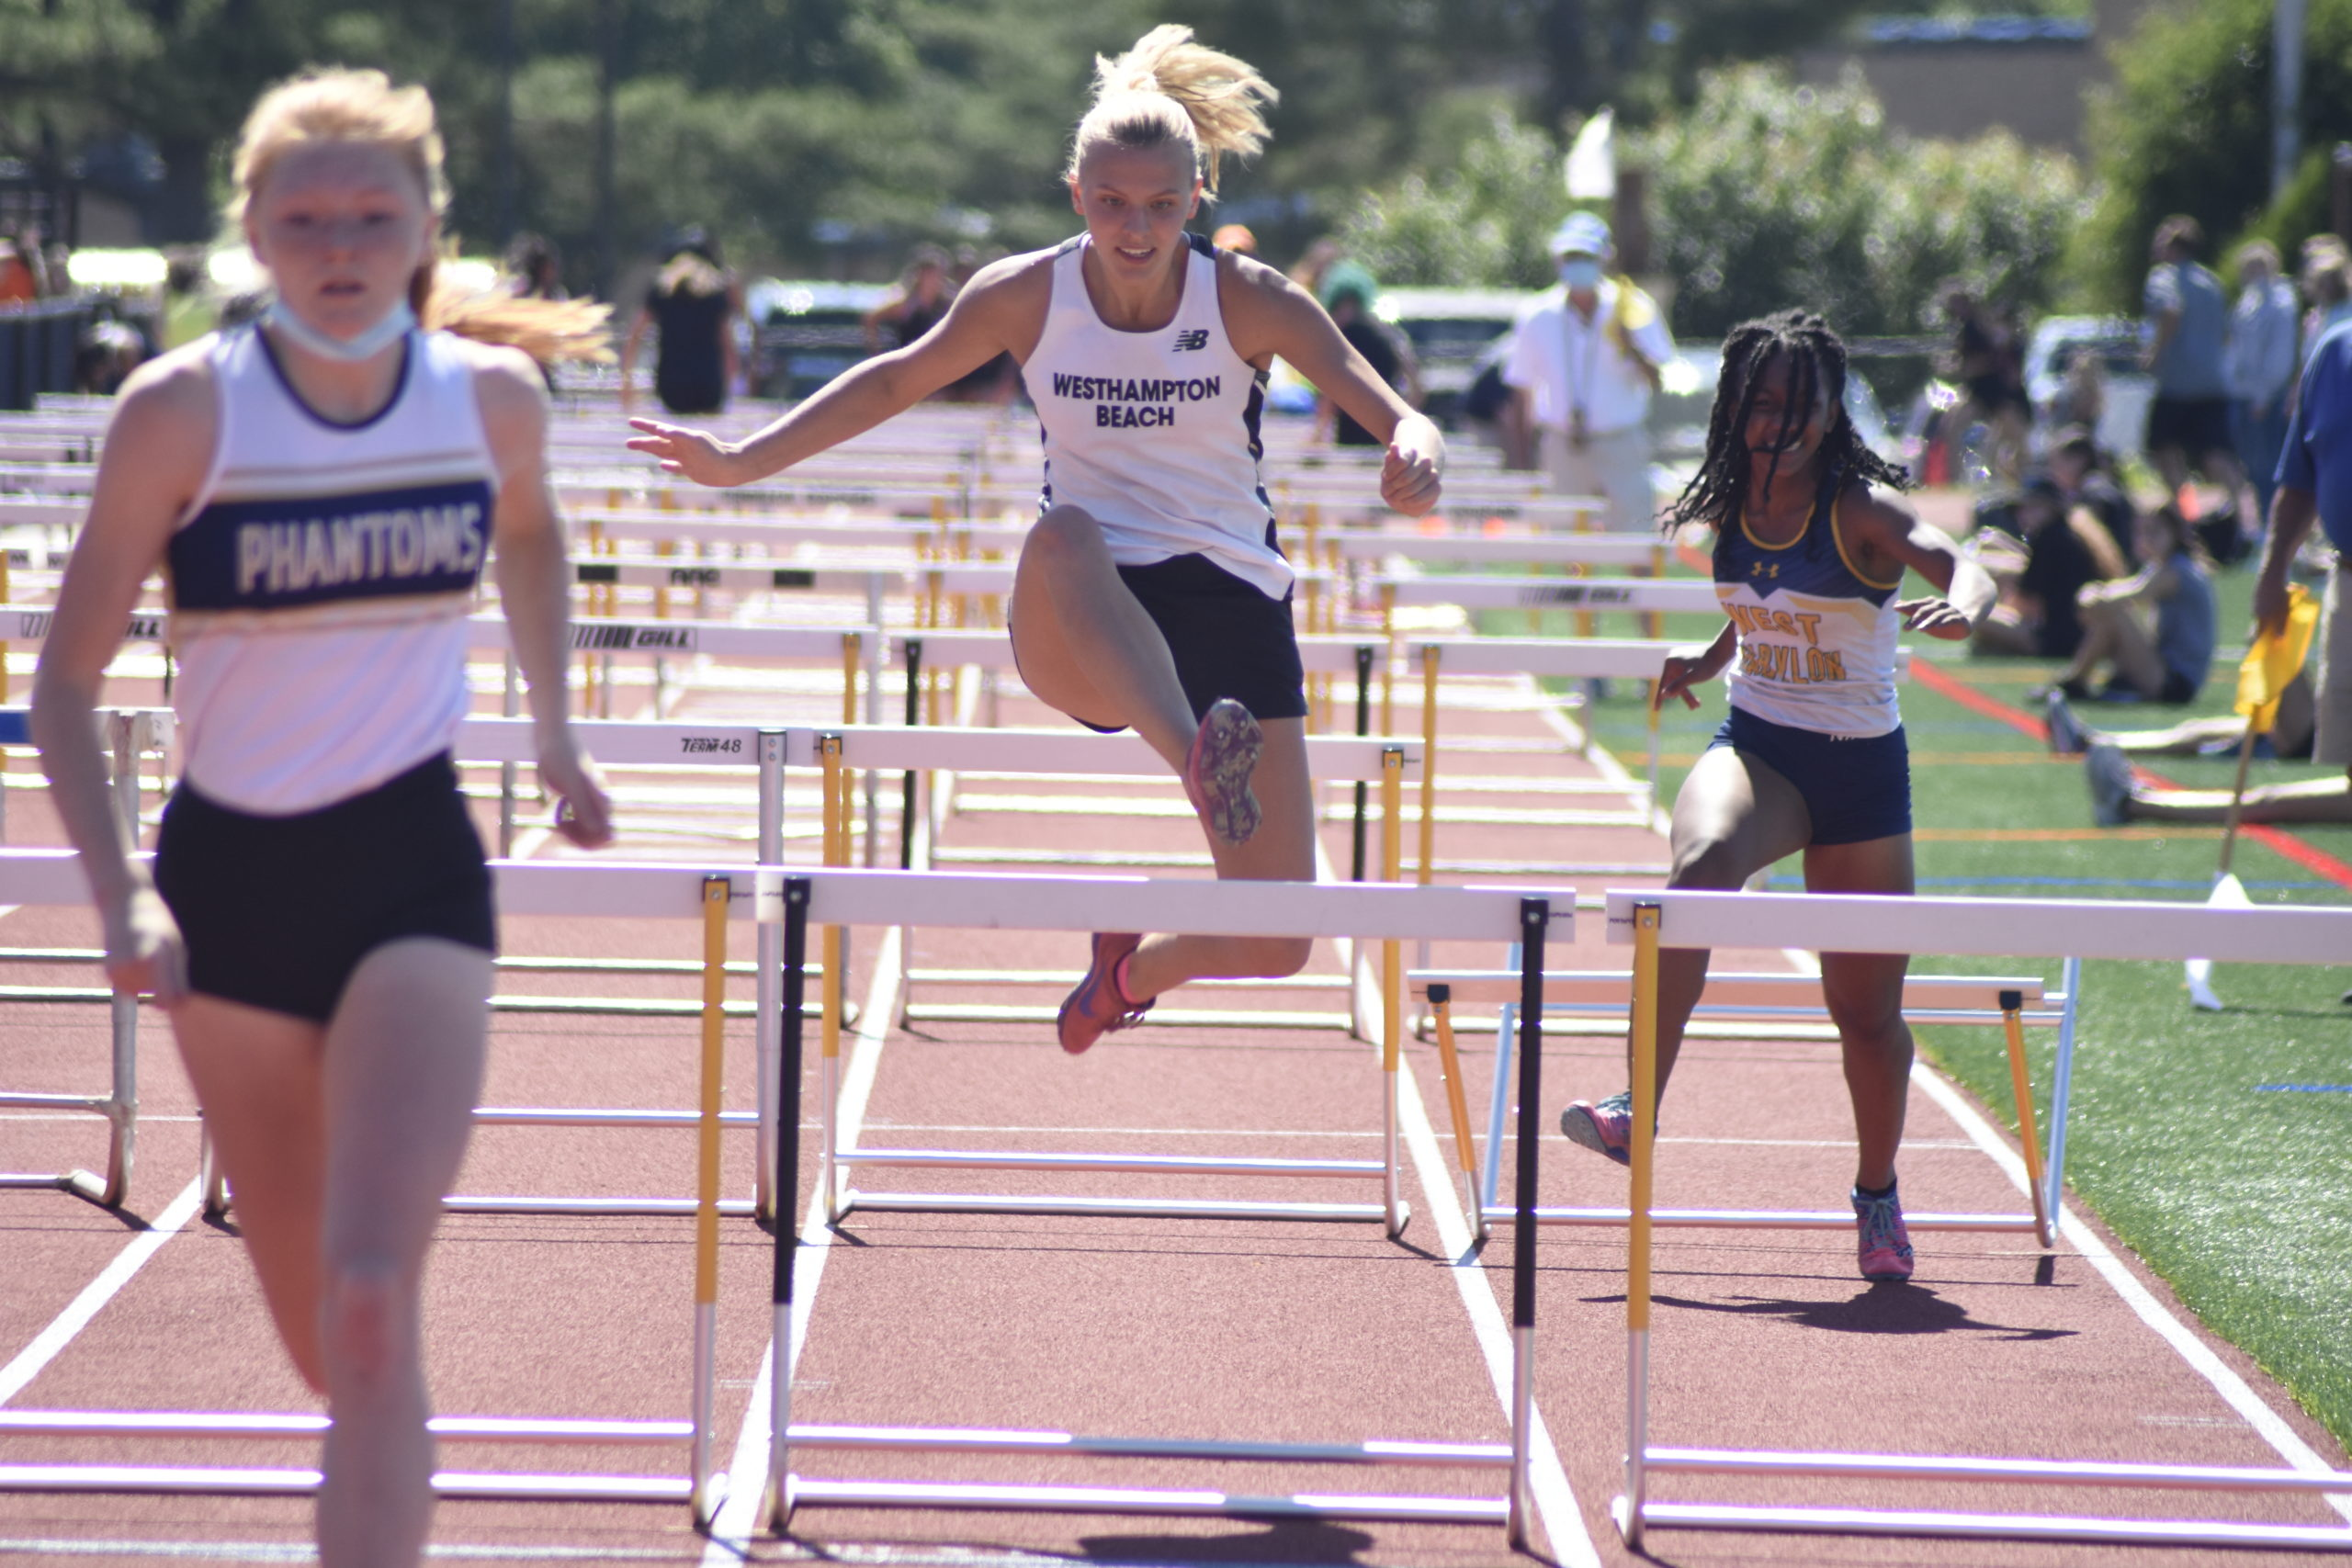 Westhampton Beach junior Valerie Finke finished seventh in the 100-meter hurdles at counties.